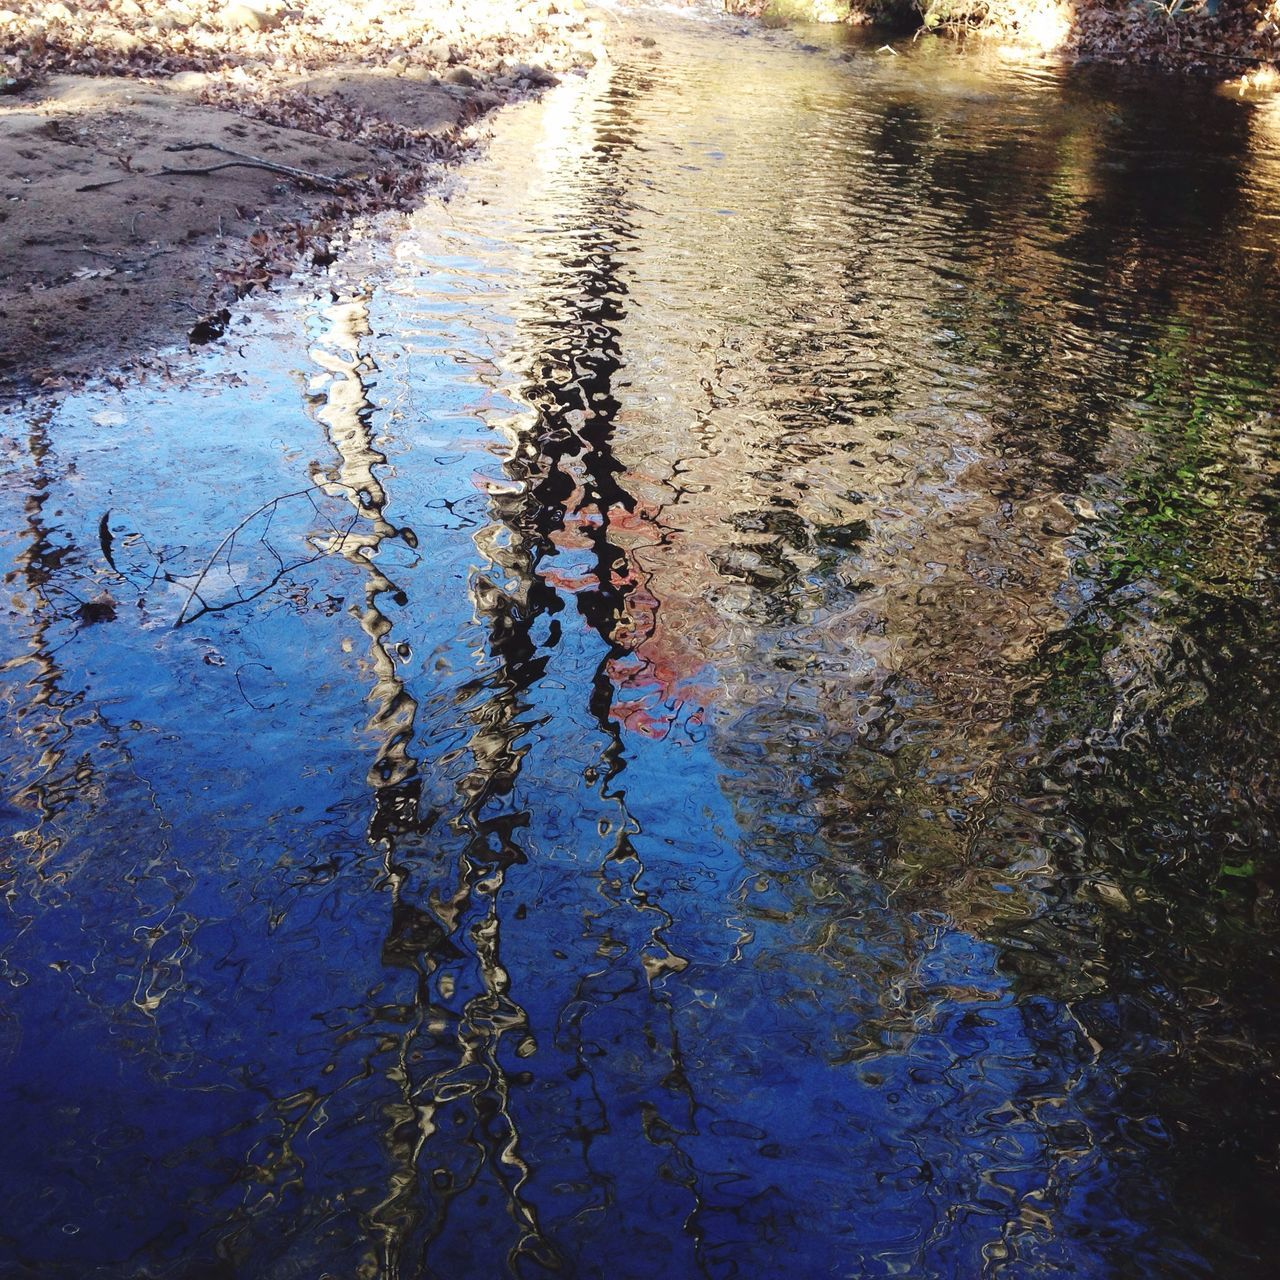 water, outdoors, reflection, high angle view, day, nature, puddle, animal themes, no people